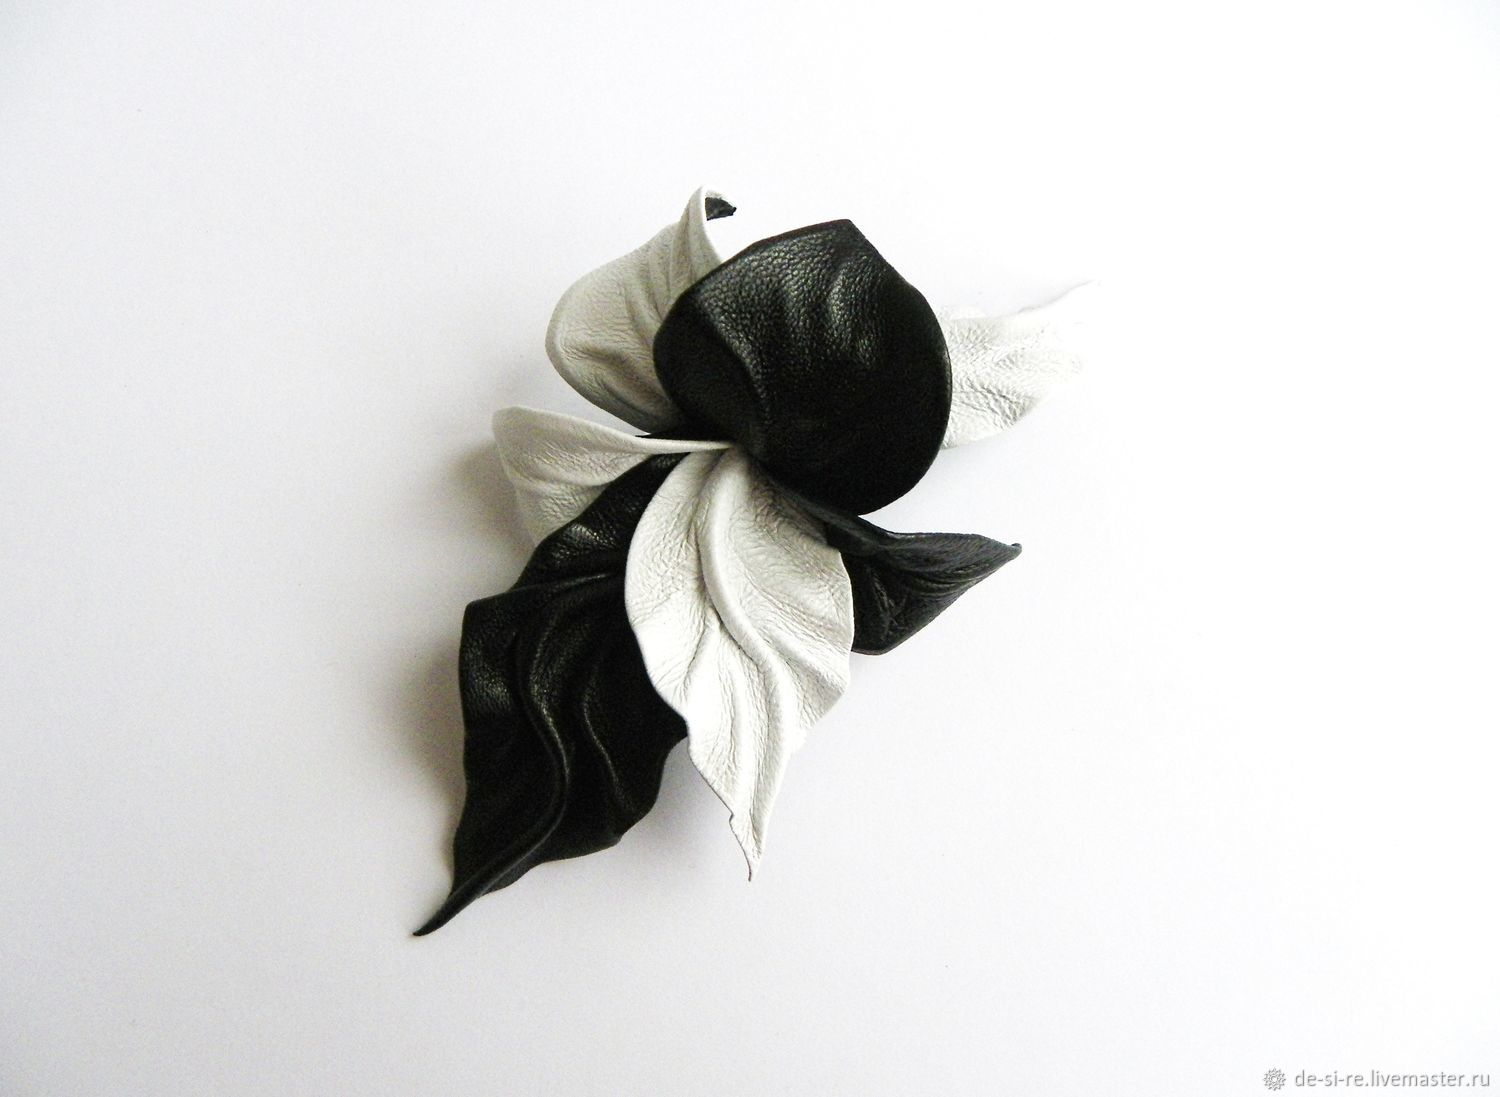 Brooch flower leather Orchid `Domino` black-and-white Original bulk flower Brooch on a bag, belt, hat, coat, fur coat, jacket, dress, sweater, scarf,shawl, scarf, tippet, outerwear Gift